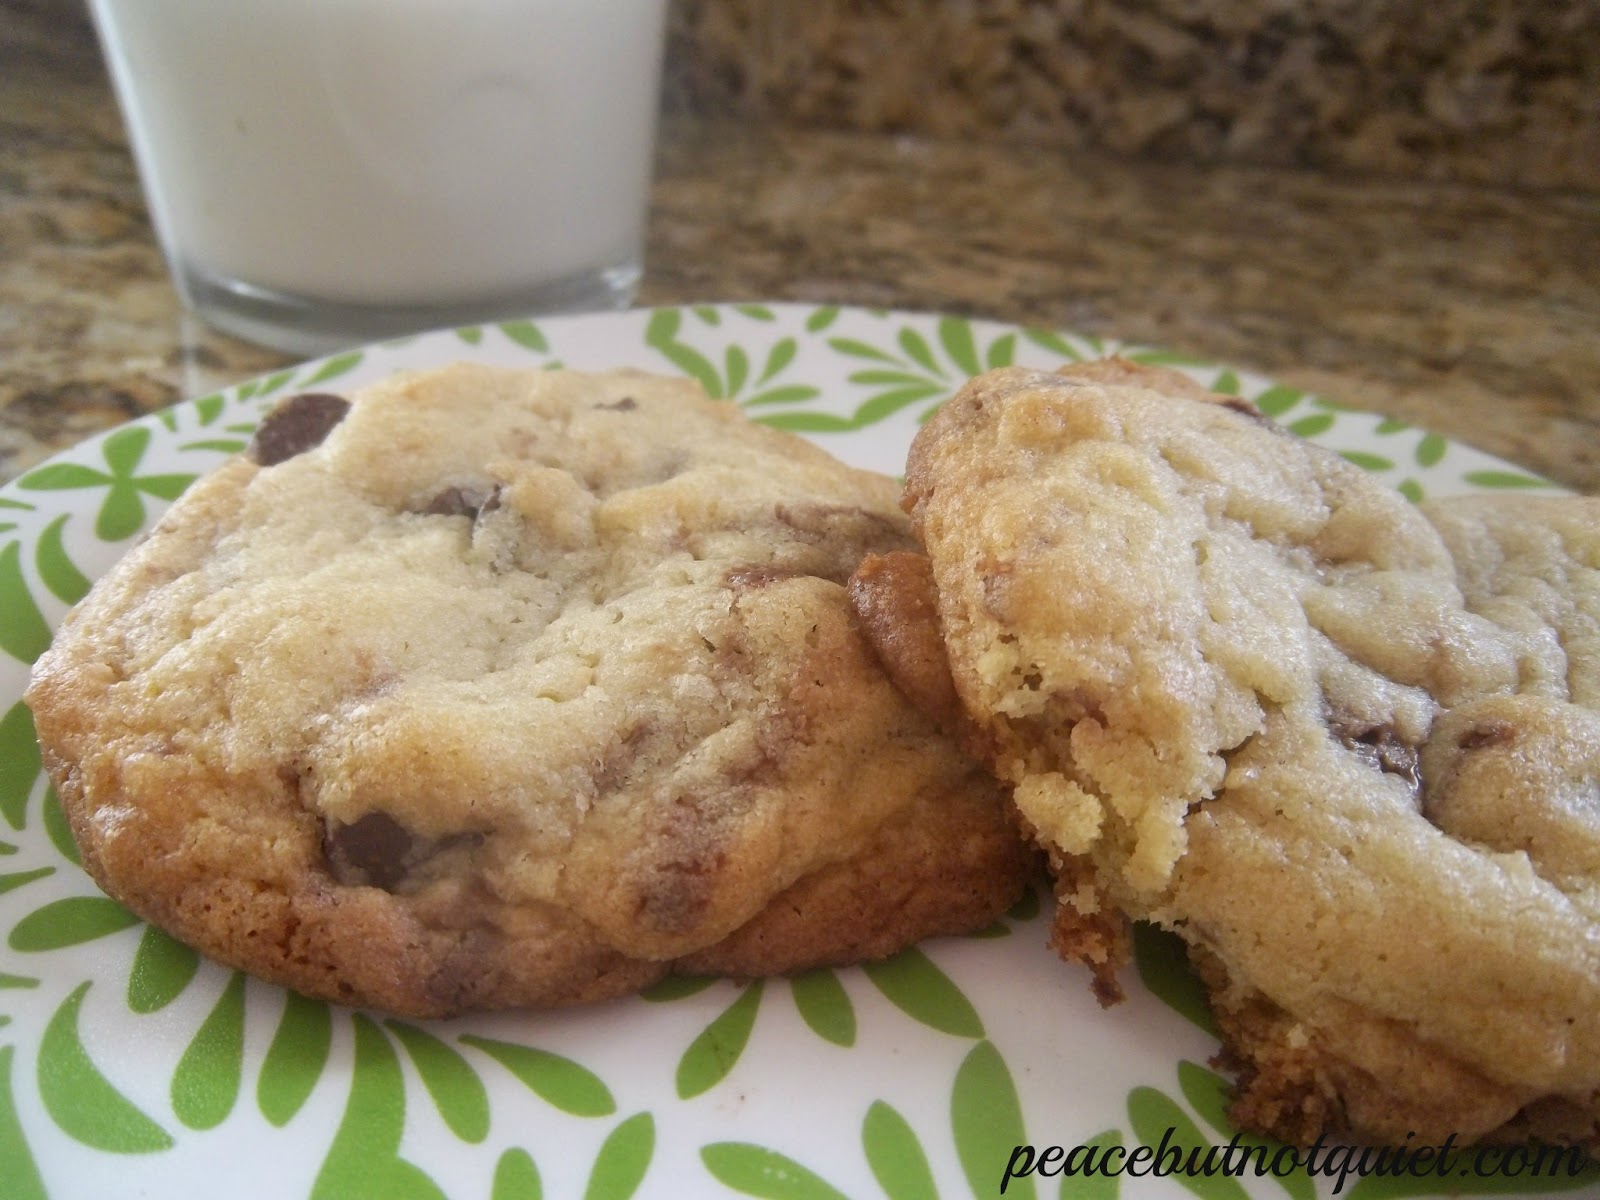 Tagalong Chocolate Chunk Cookies